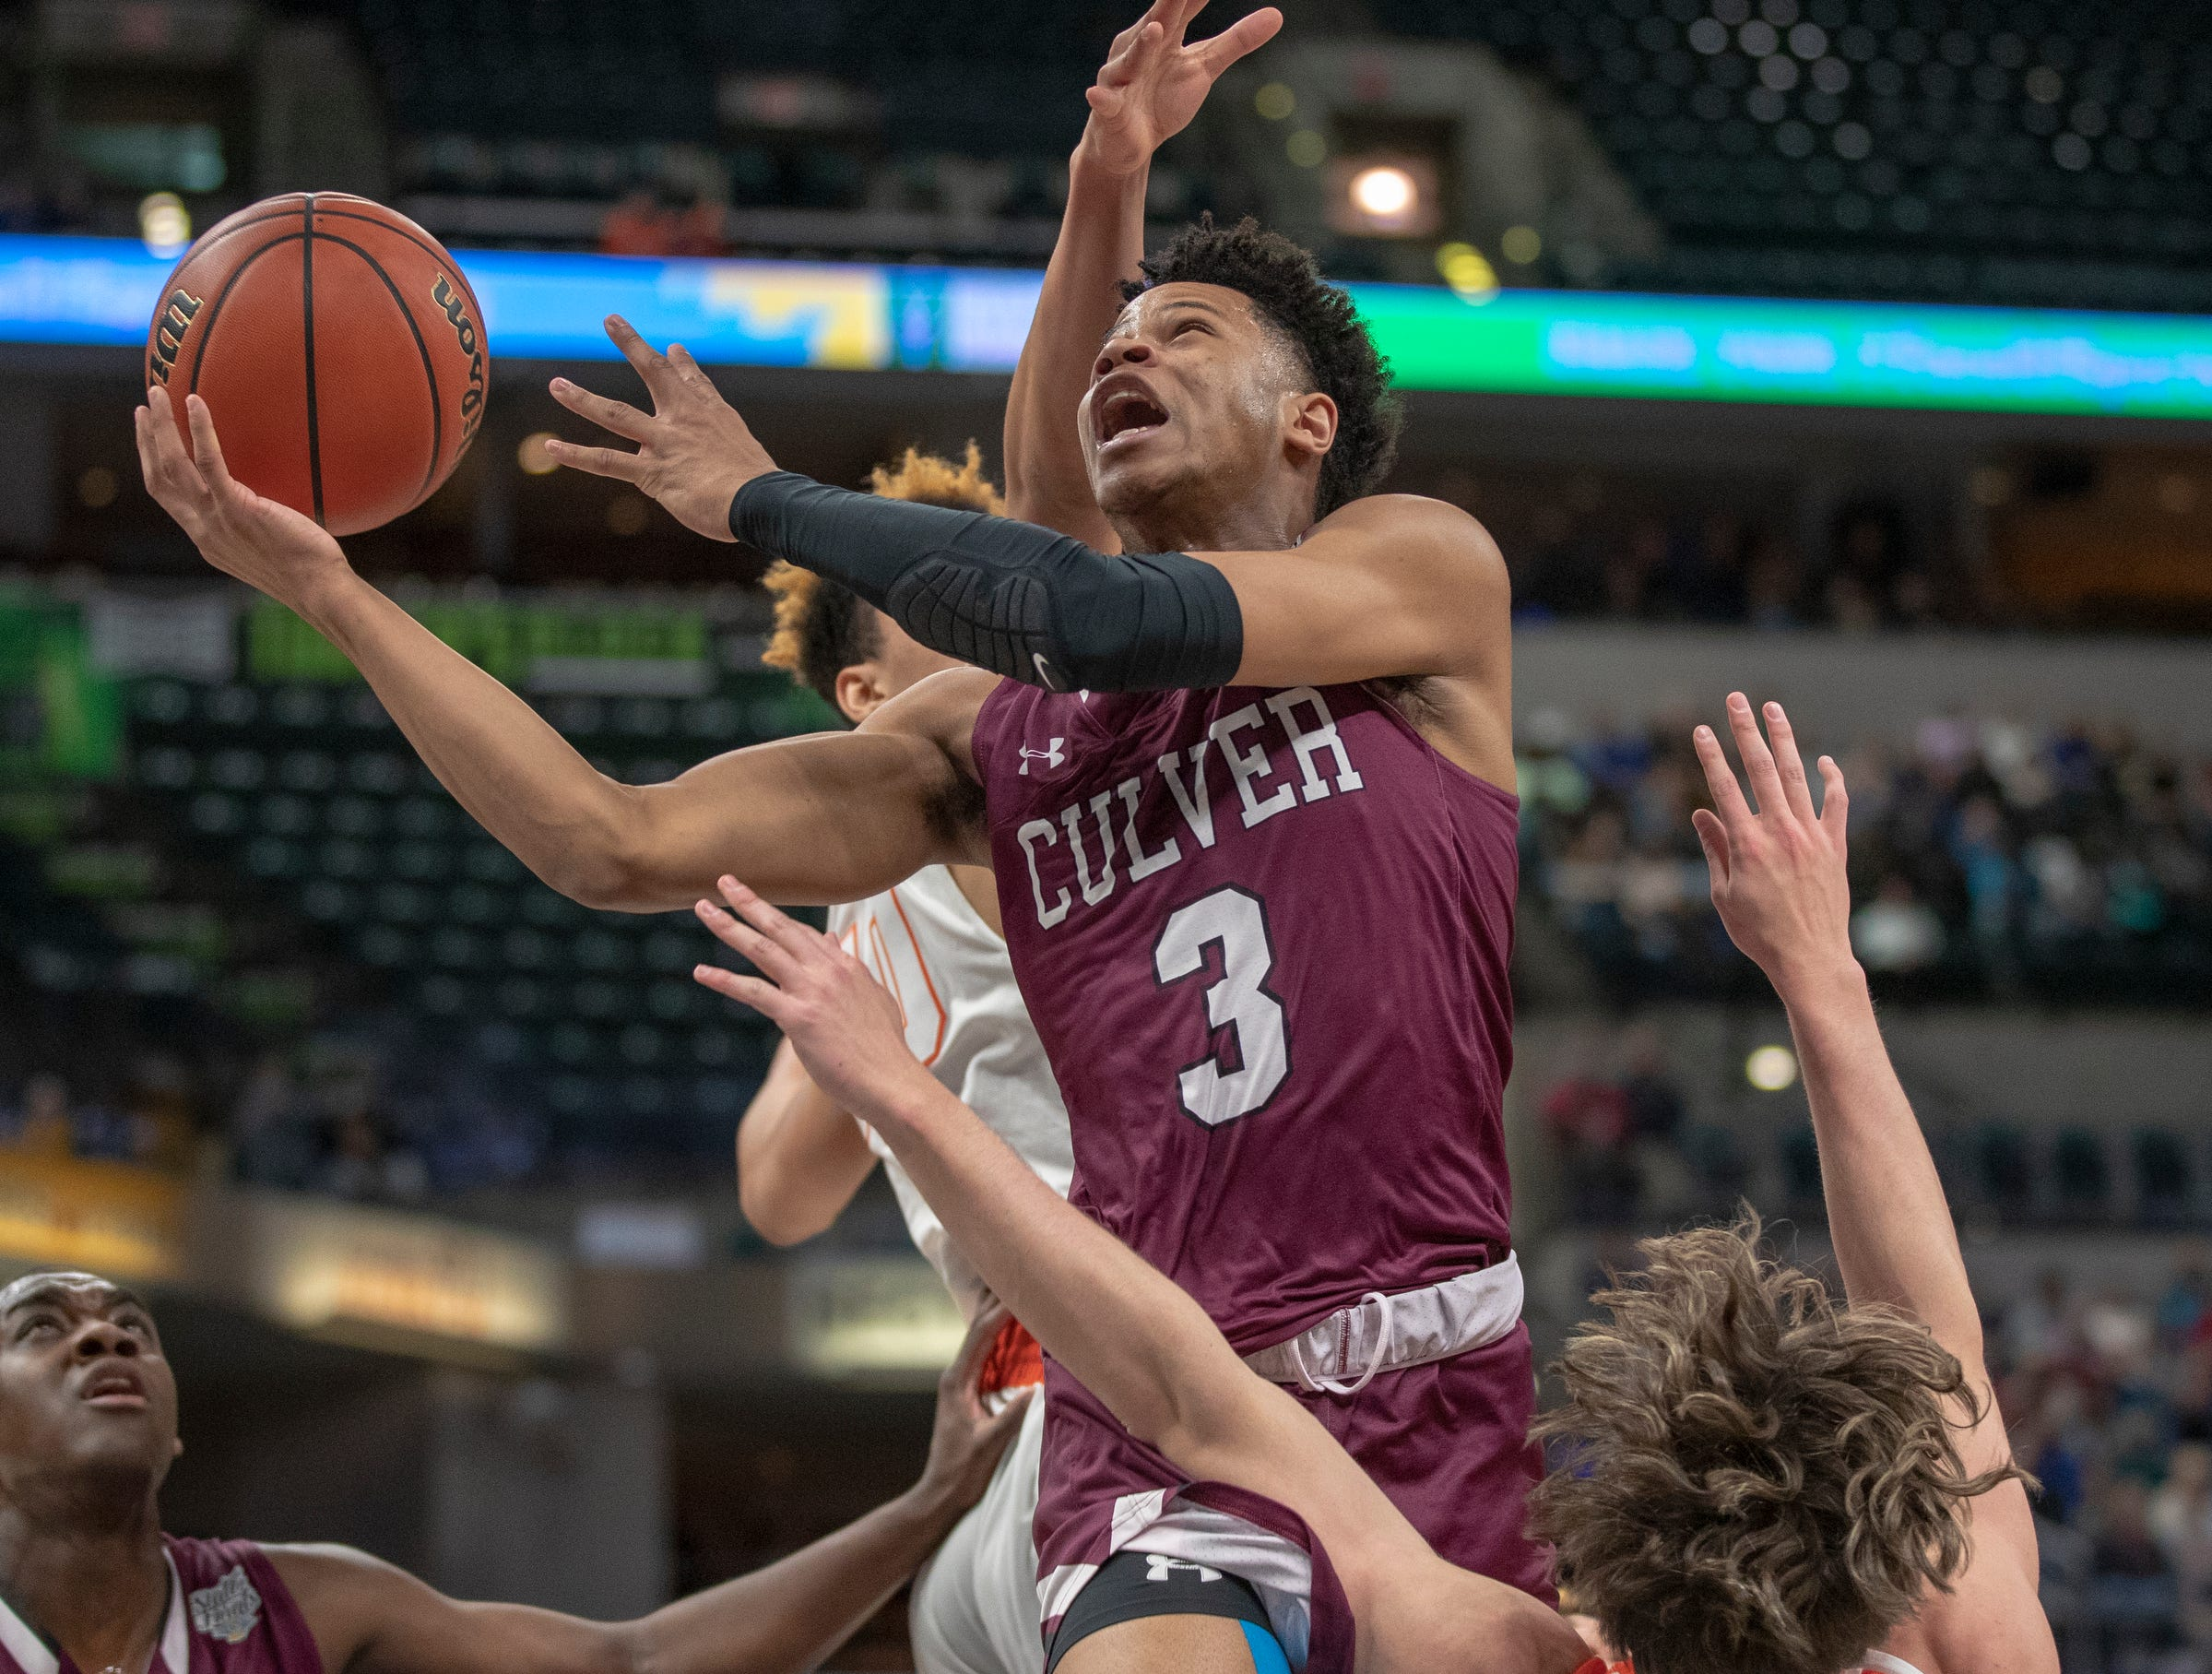 Ethan Brittain-Watts of Culver Academy, puts up a shot, Culver Academies vs. Silver Creek Dragons in the Class 3S Boys Basketball State Final, Bankers Life Fieldhouse, Indianapolis, Saturday, March 23, 2019.